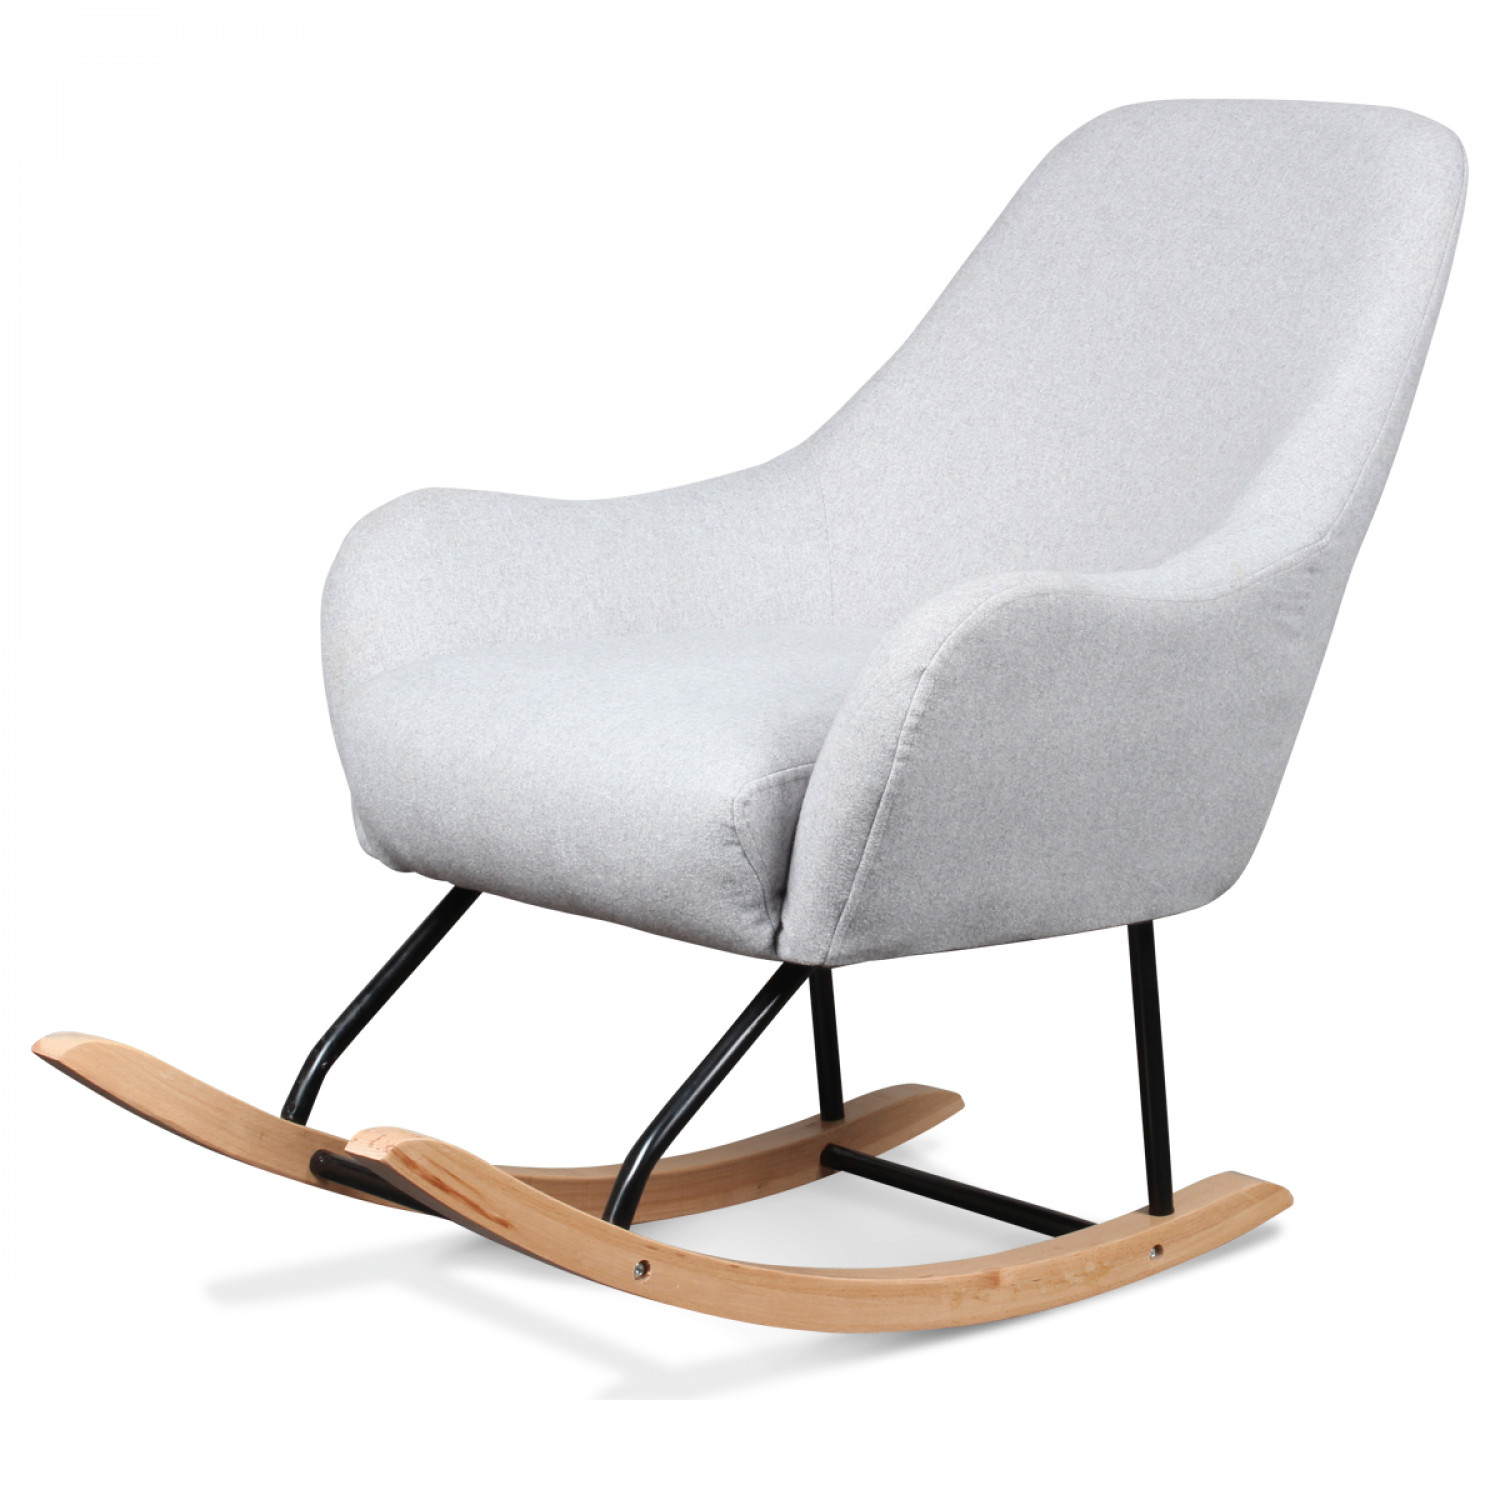 fauteuil rocking chair design scandinave bois et m tal sledge demeure et jardin. Black Bedroom Furniture Sets. Home Design Ideas